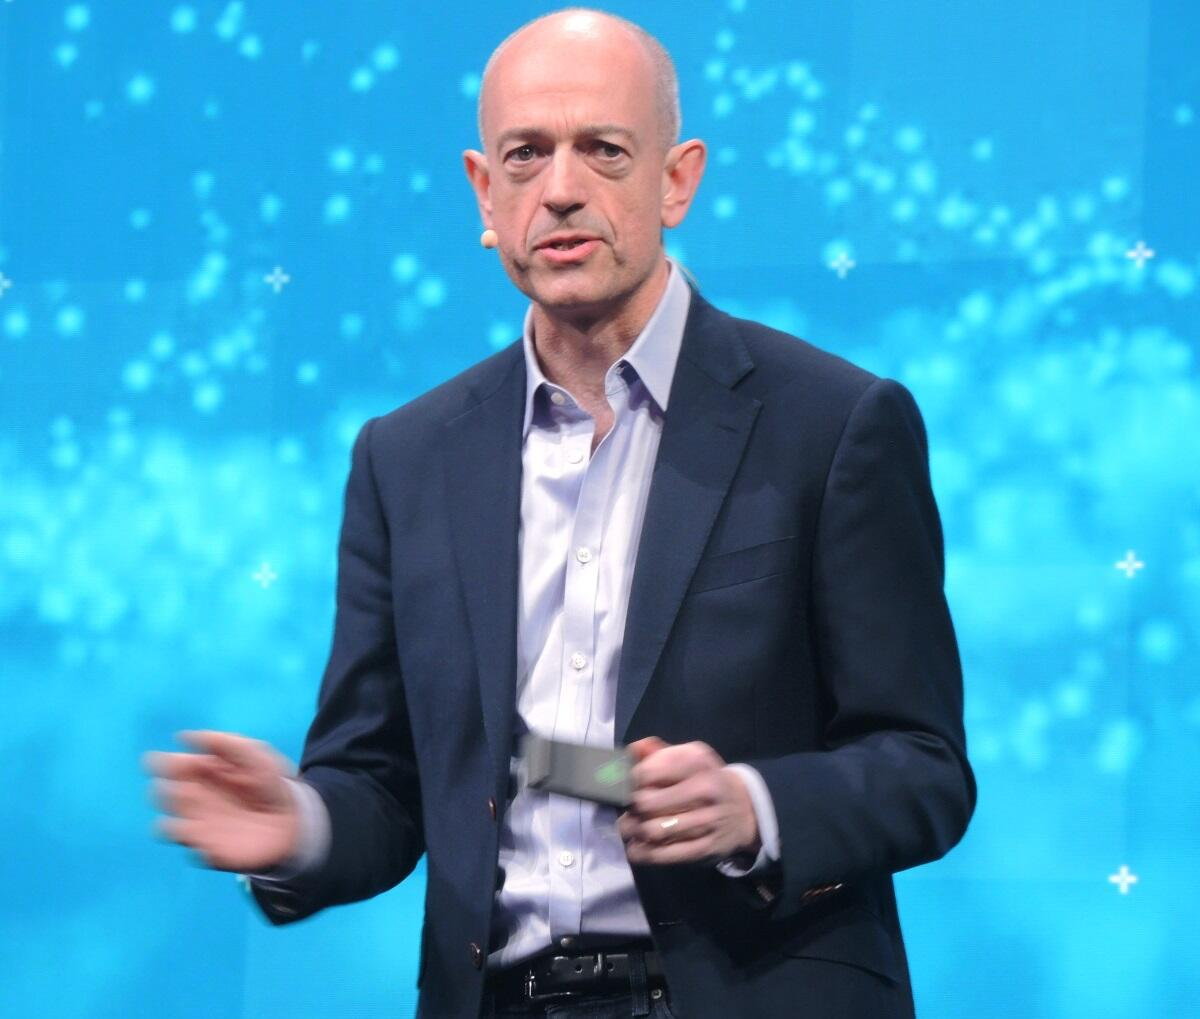 Segars shared his vision for the company in his keynote at Arm Tech Con. (Image: EE Times)